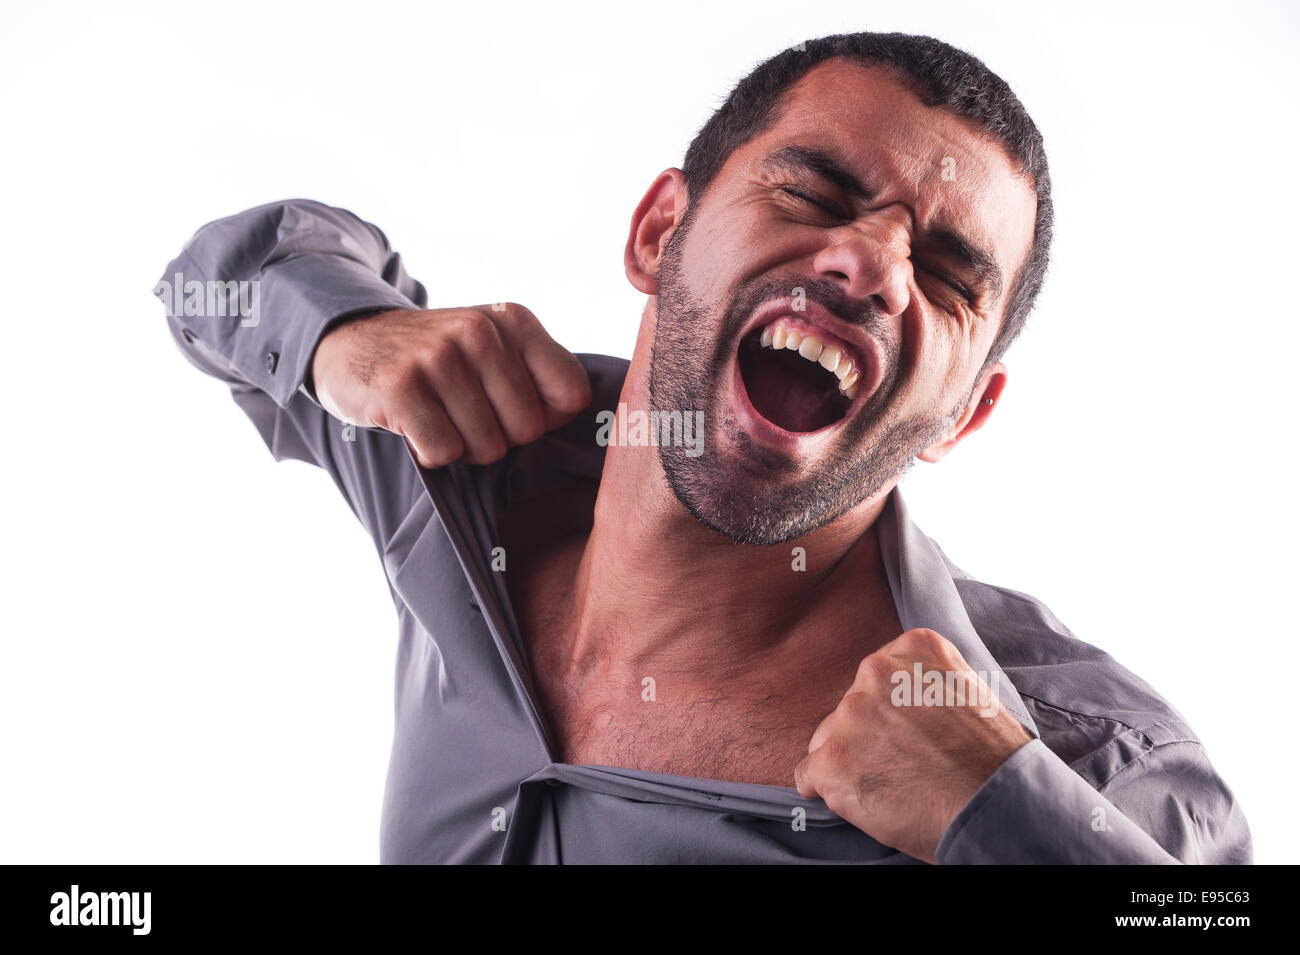 man screaming and ripping his shirt - Stock Image